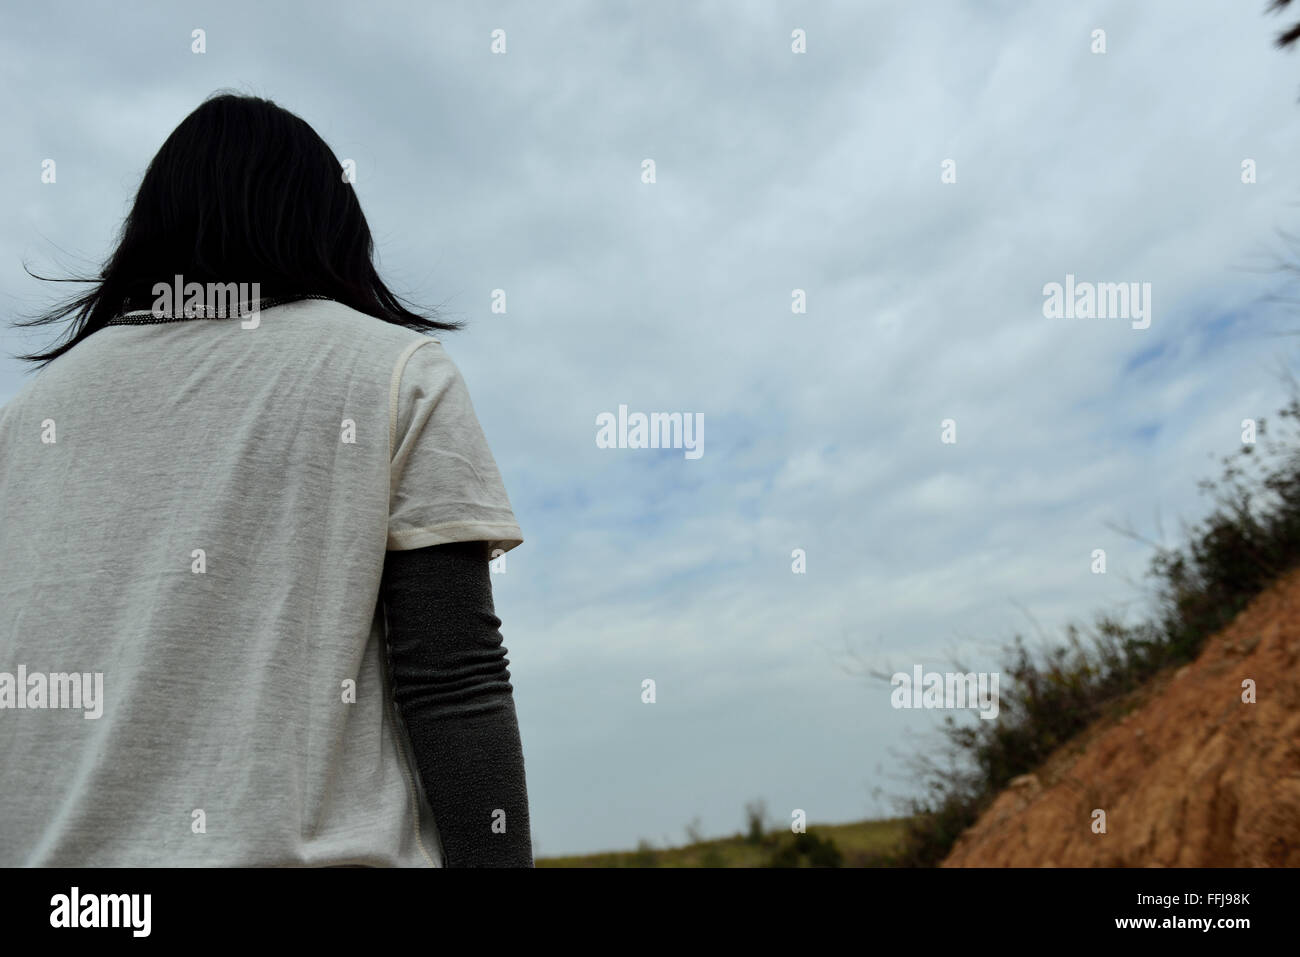 Standing on the hillside, overlooking the endless distance - Stock Image